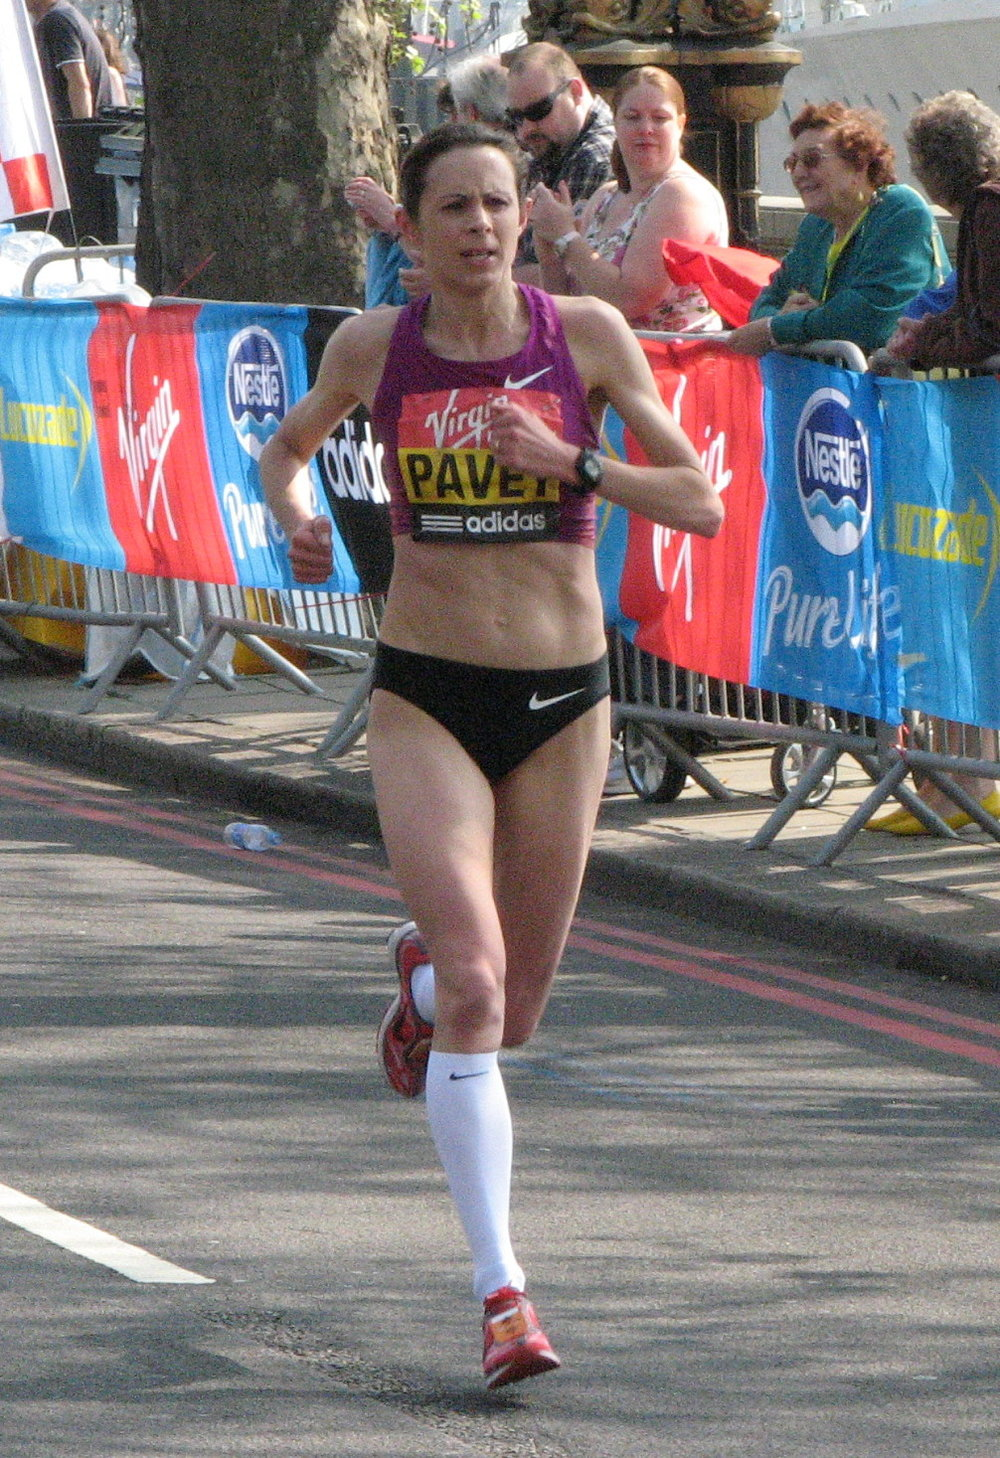 Jo_Pavey,_London_Marathon_2011_(cropped).jpg